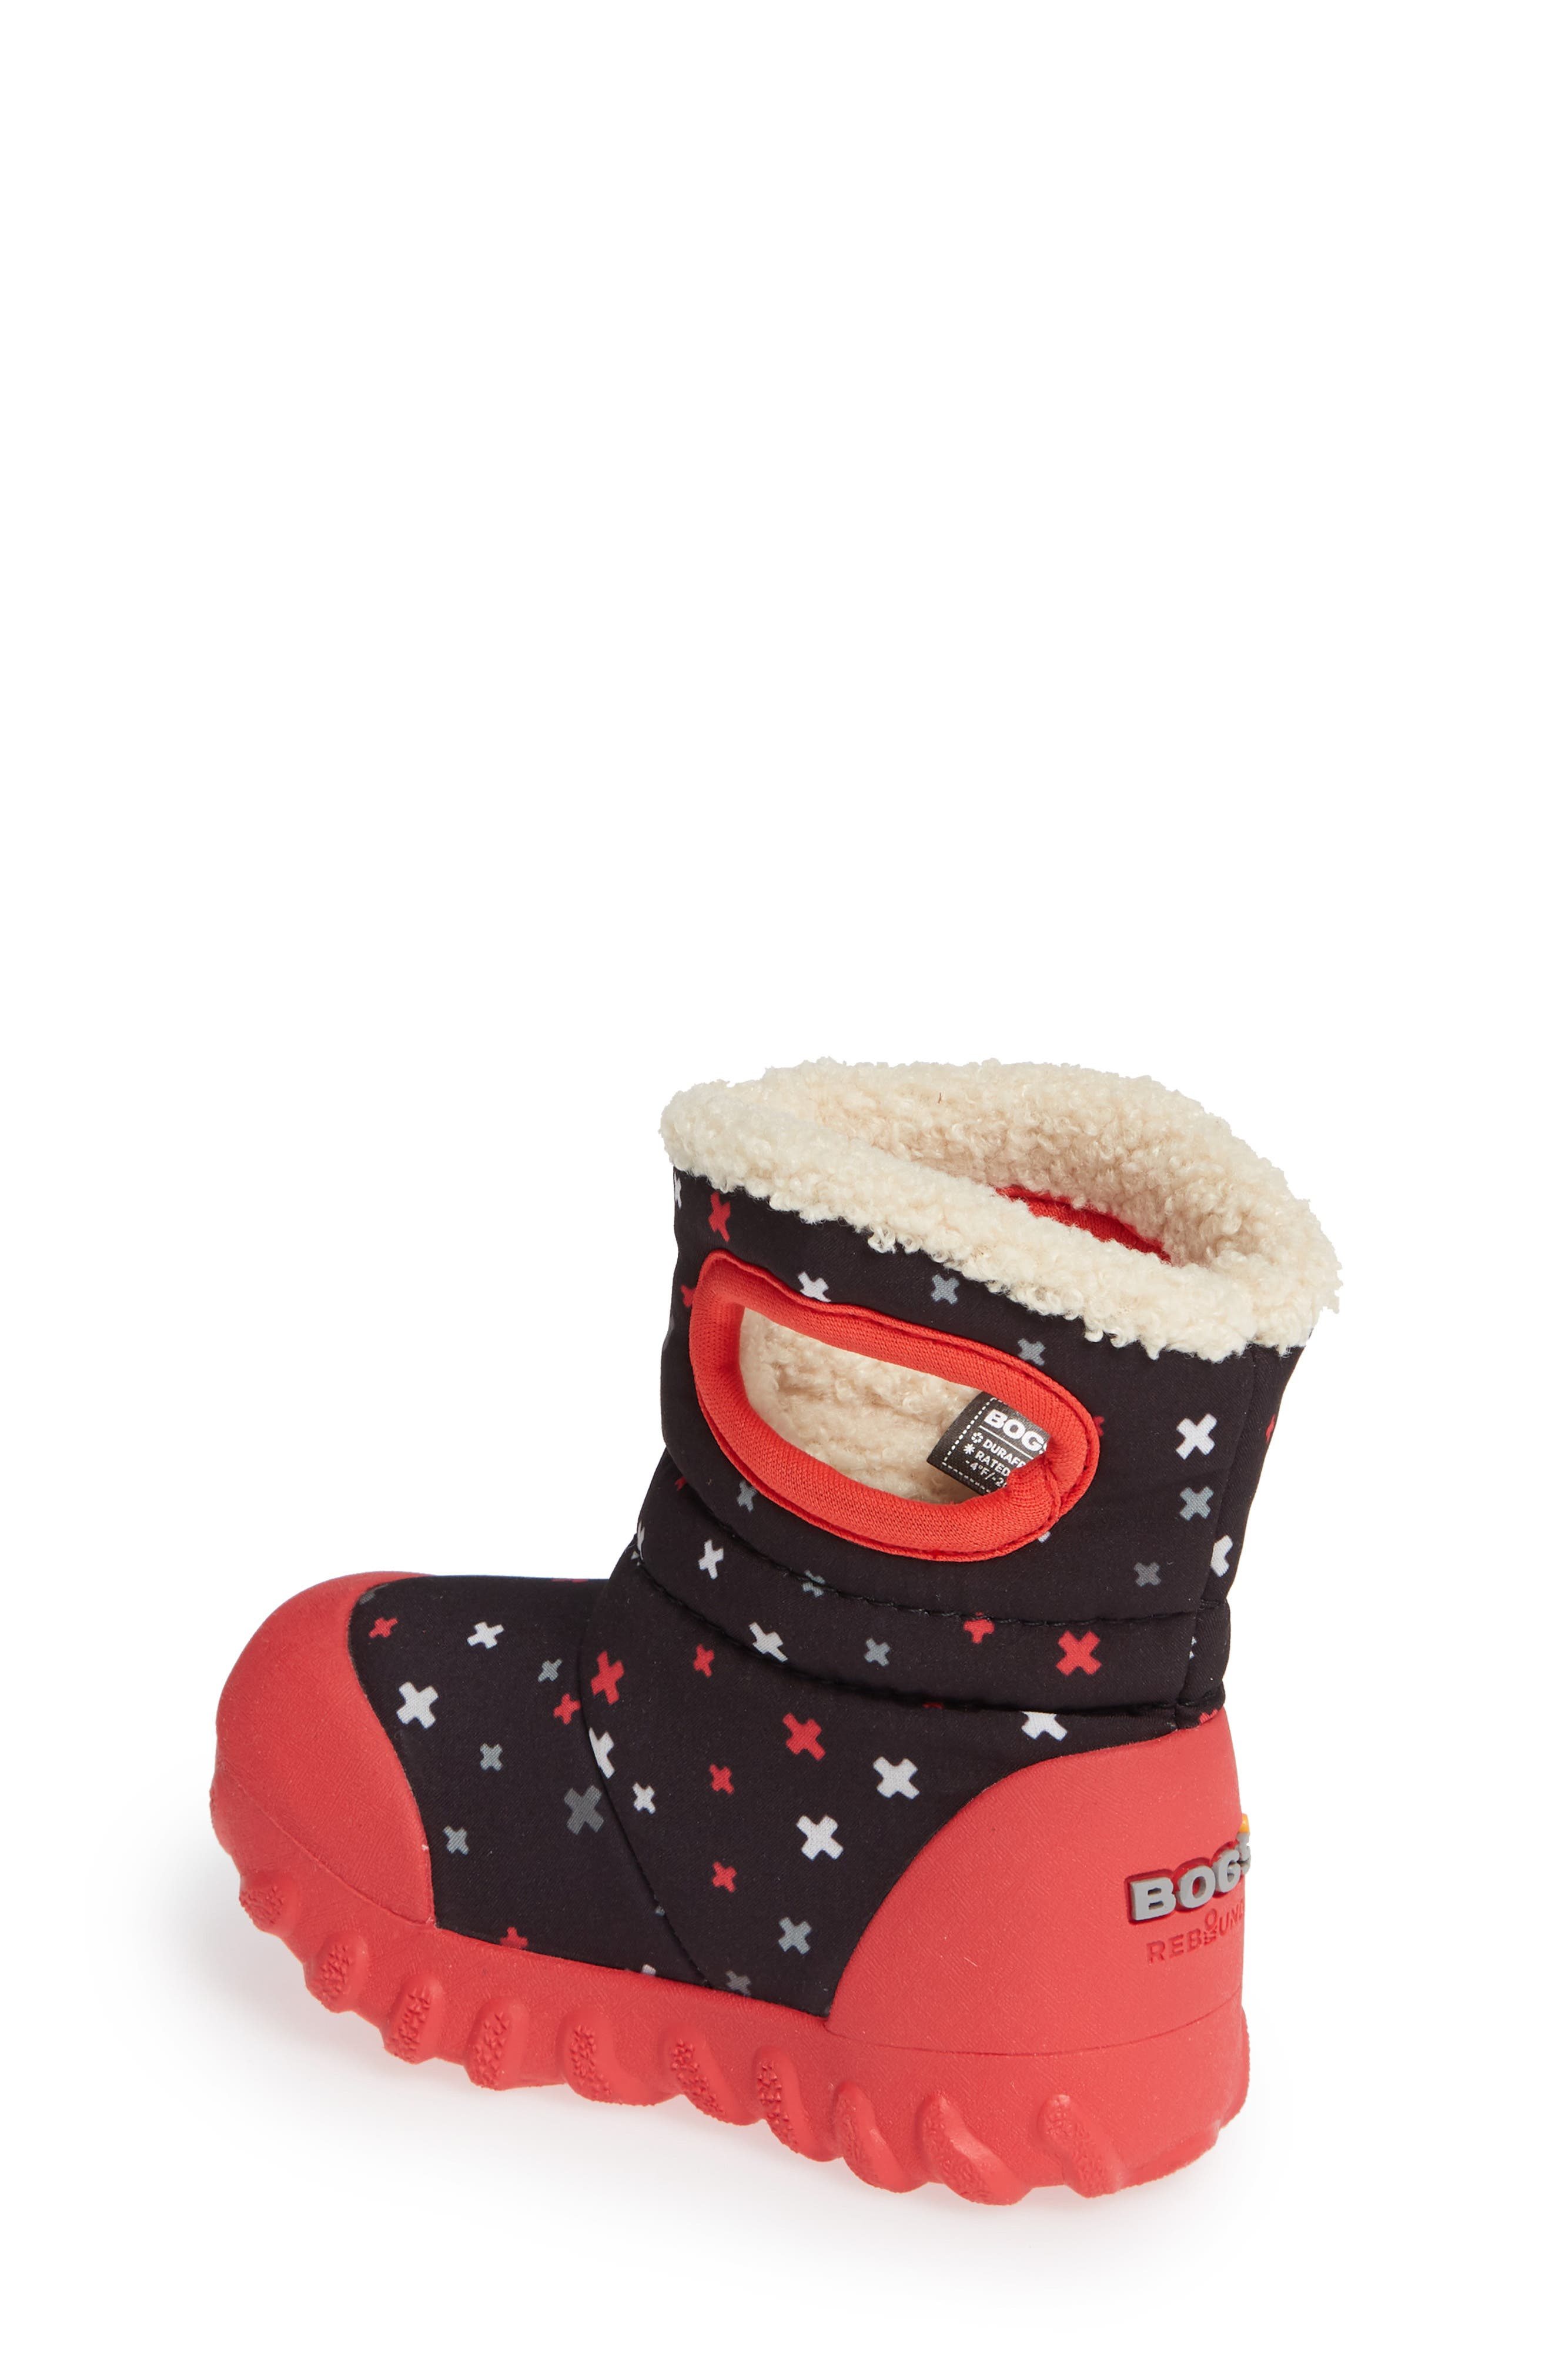 BOGS, B-MOC Plus Waterproof Insulated Faux Fur Boot, Alternate thumbnail 2, color, 009